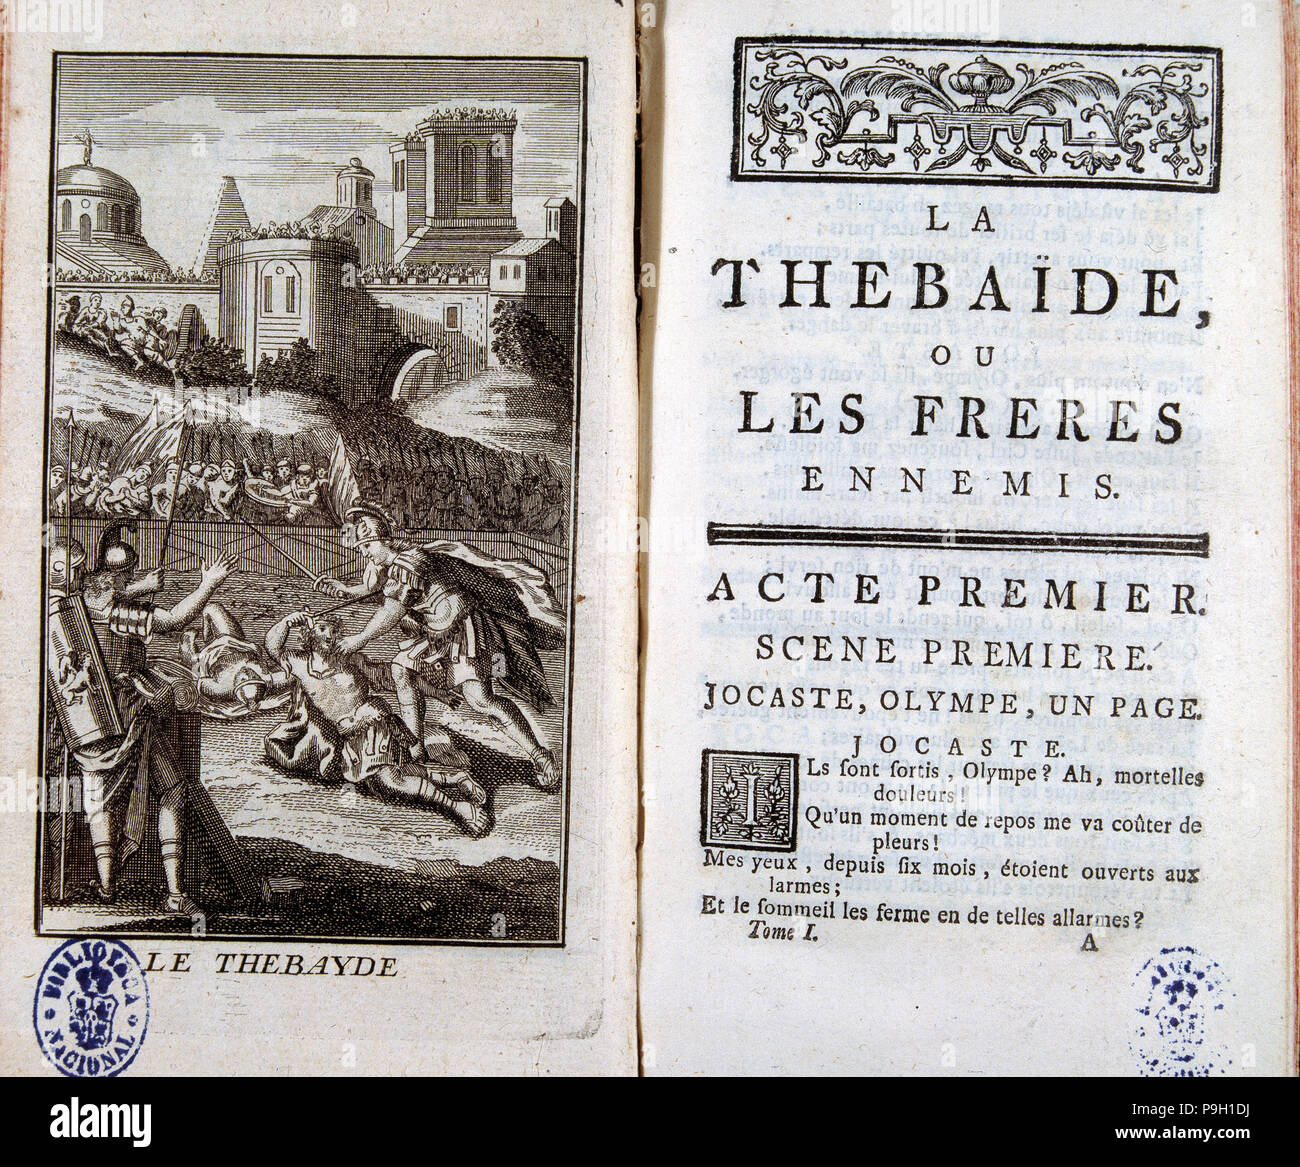 https www alamy com cover of thebaid by jean racine with an illustration of 1744 image212430670 html